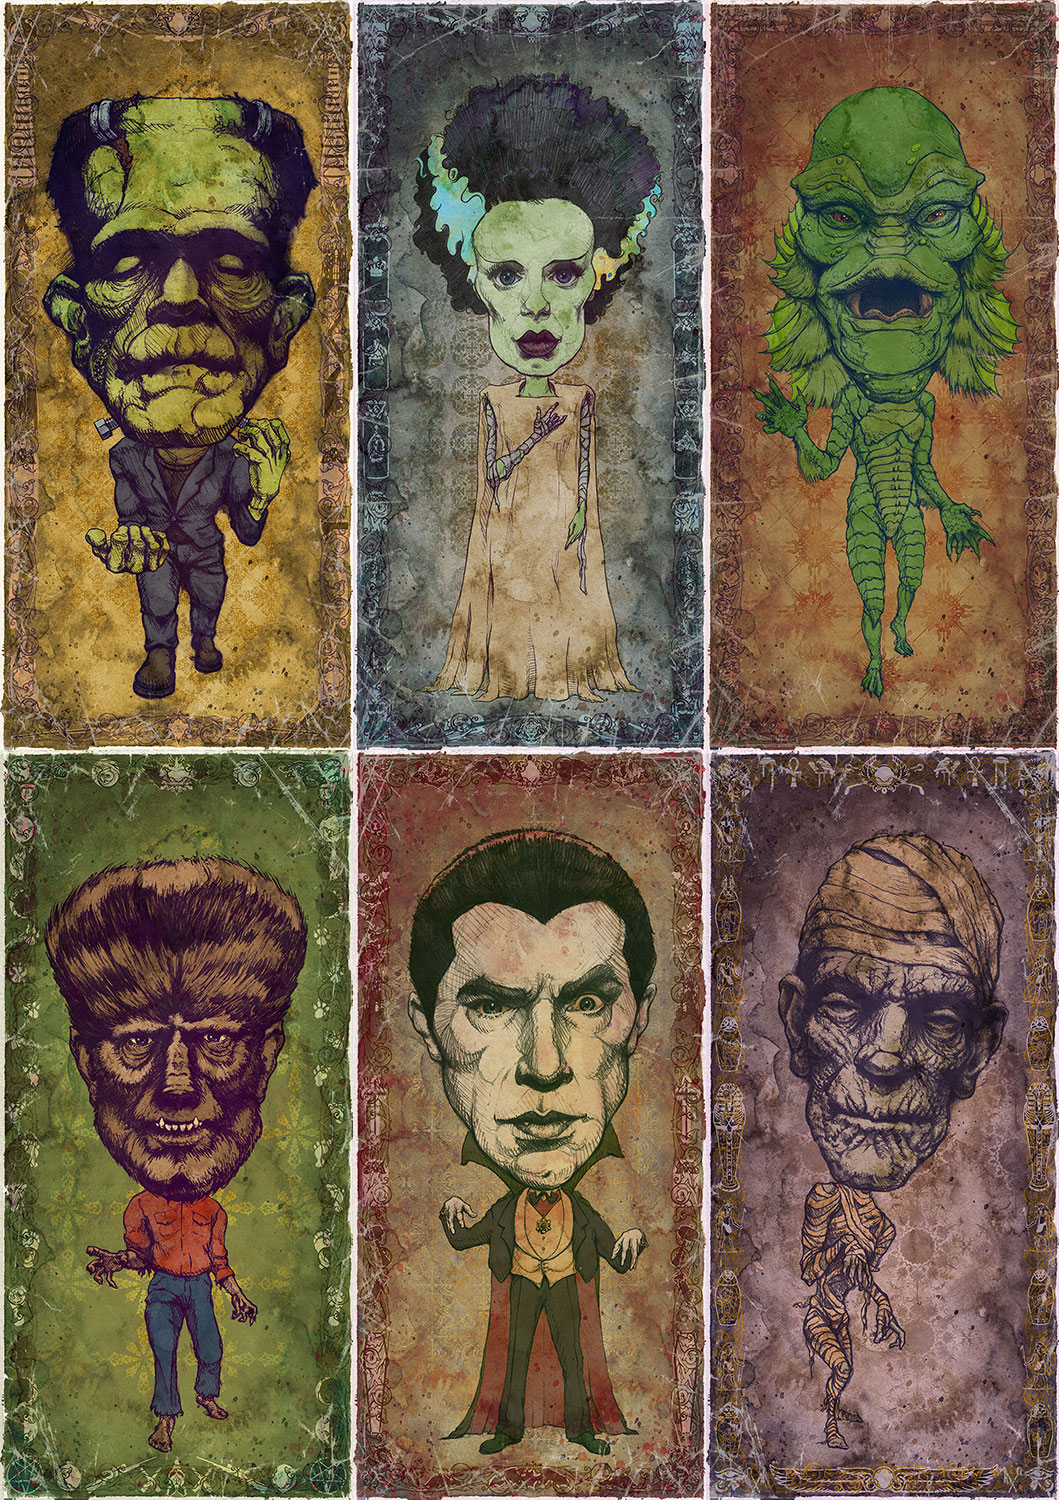 """Set of 6 Classic Monster Mini Art Prints    6 individual 4 1/2"""" x 9"""" Prints    Each signed and numbered on archival paper    $59 ($5 Savings!)    Click image to purchase"""